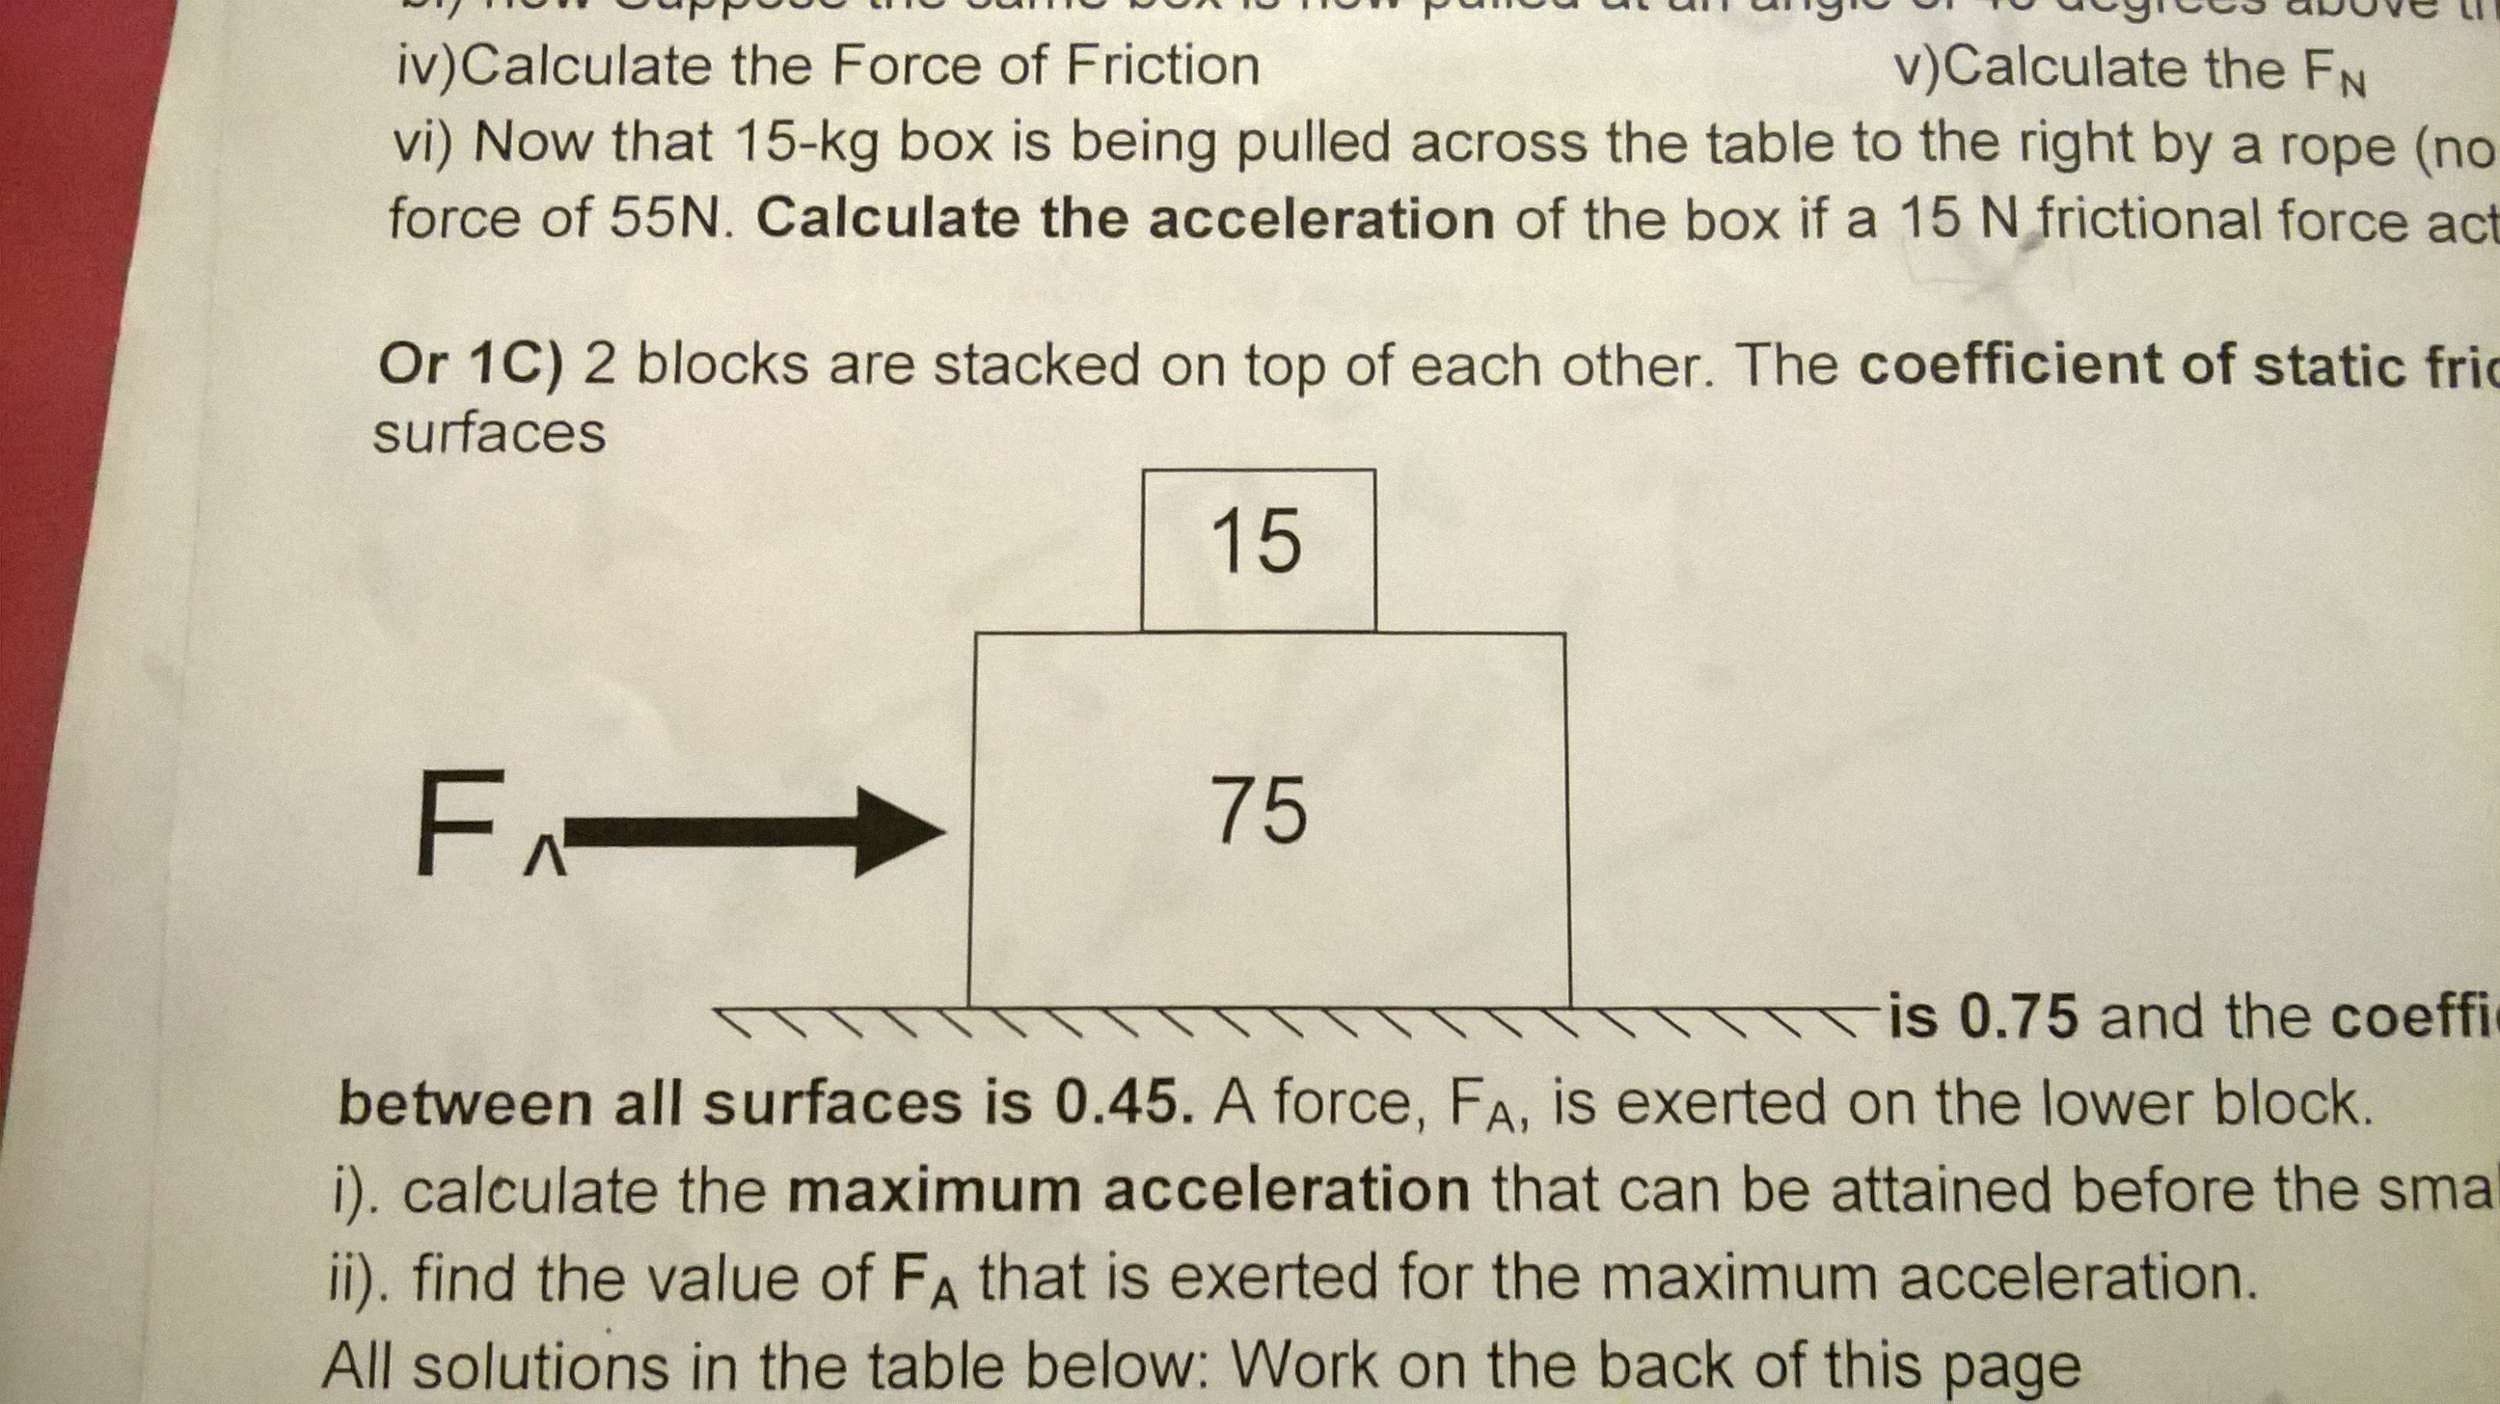 Need help with 1C 19